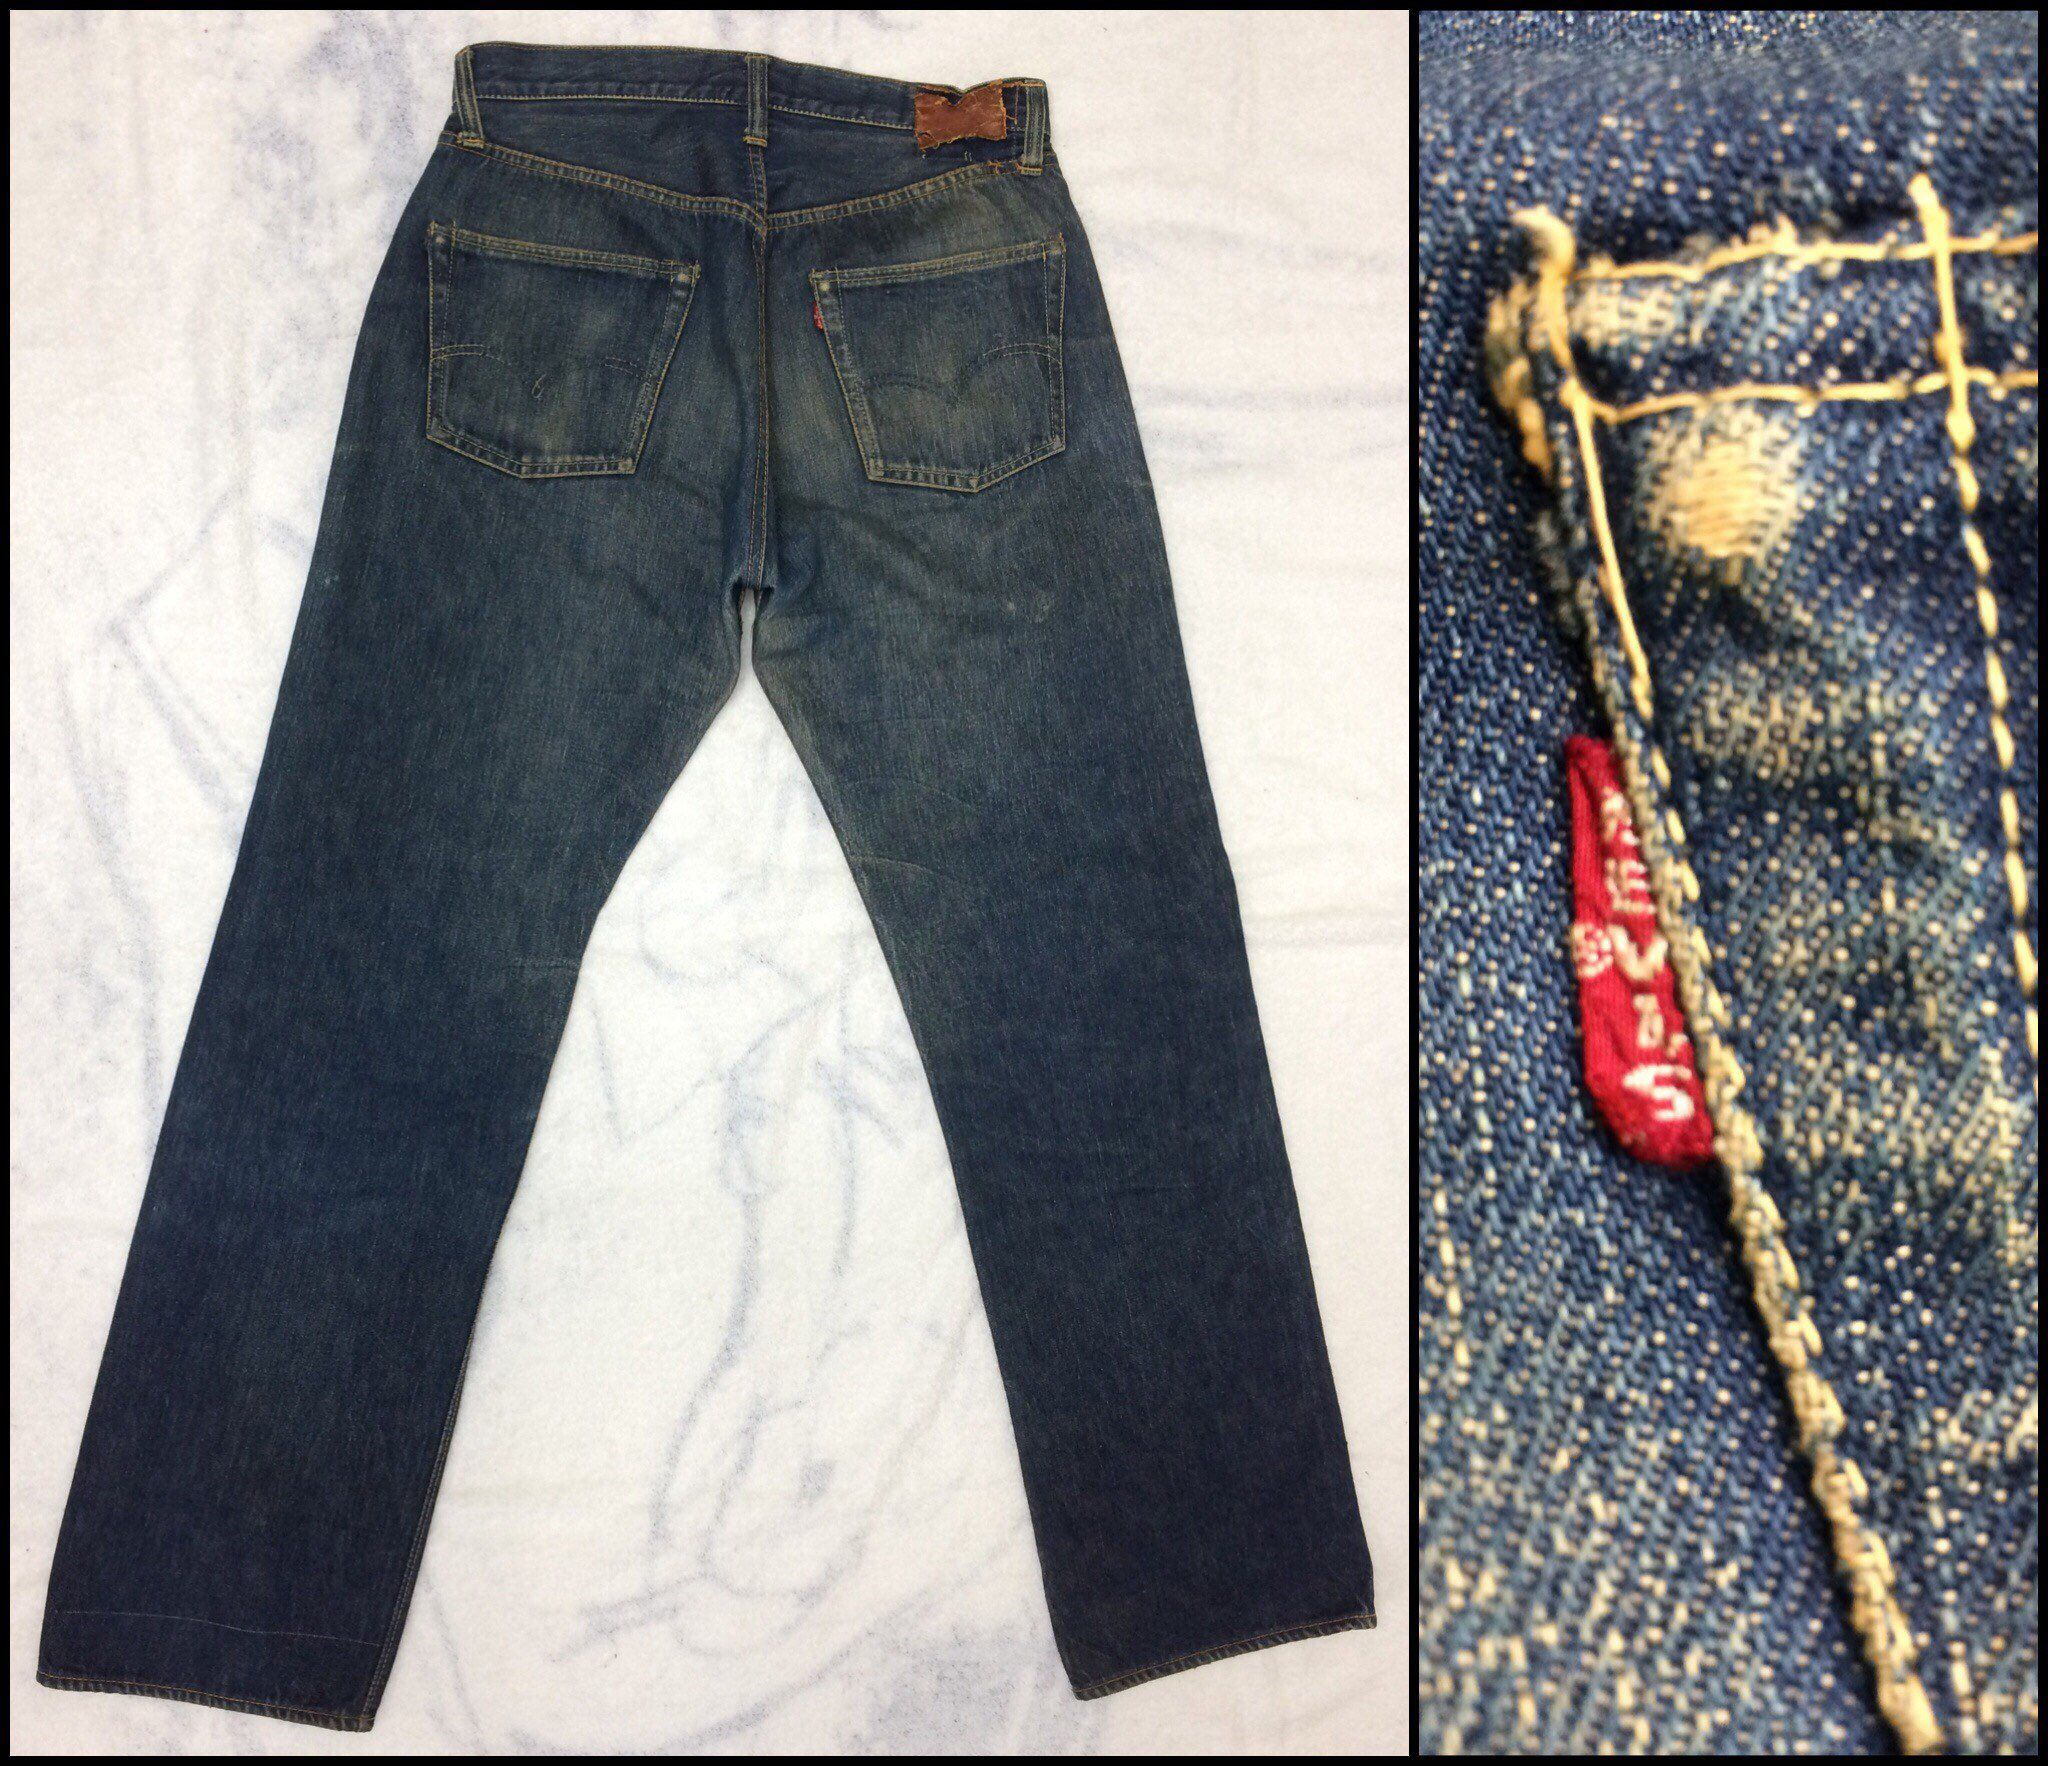 60721b03c17 Excited to share the latest addition to my  etsy shop  1950s Levis 501Zxx  big E indigo denim blue jeans 32x32 hidden rivets redline selvedge single  stitch ...